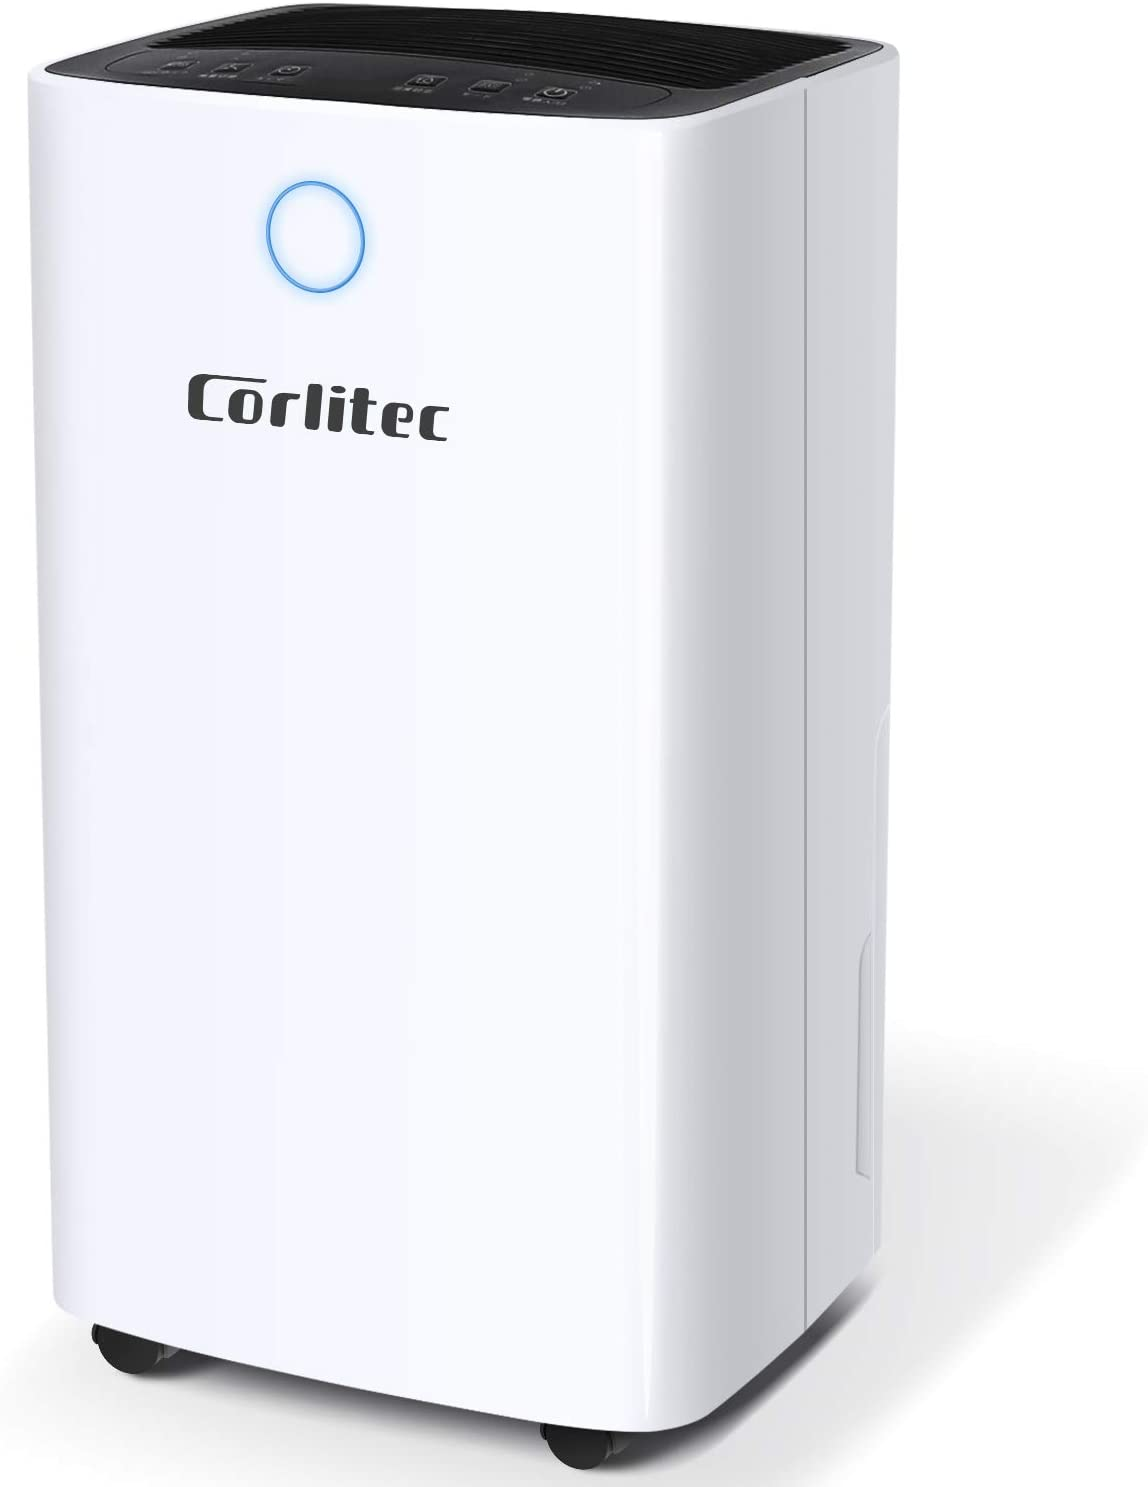 Corlitec Dehumidifier for Home and Basements 25 Pints Efficiency for 1500 Sq.Ft, 68oz(0.53gallon) Water Tank with Drain Hose, Intelligent Humidity Control, Childlock, Laundry Dry